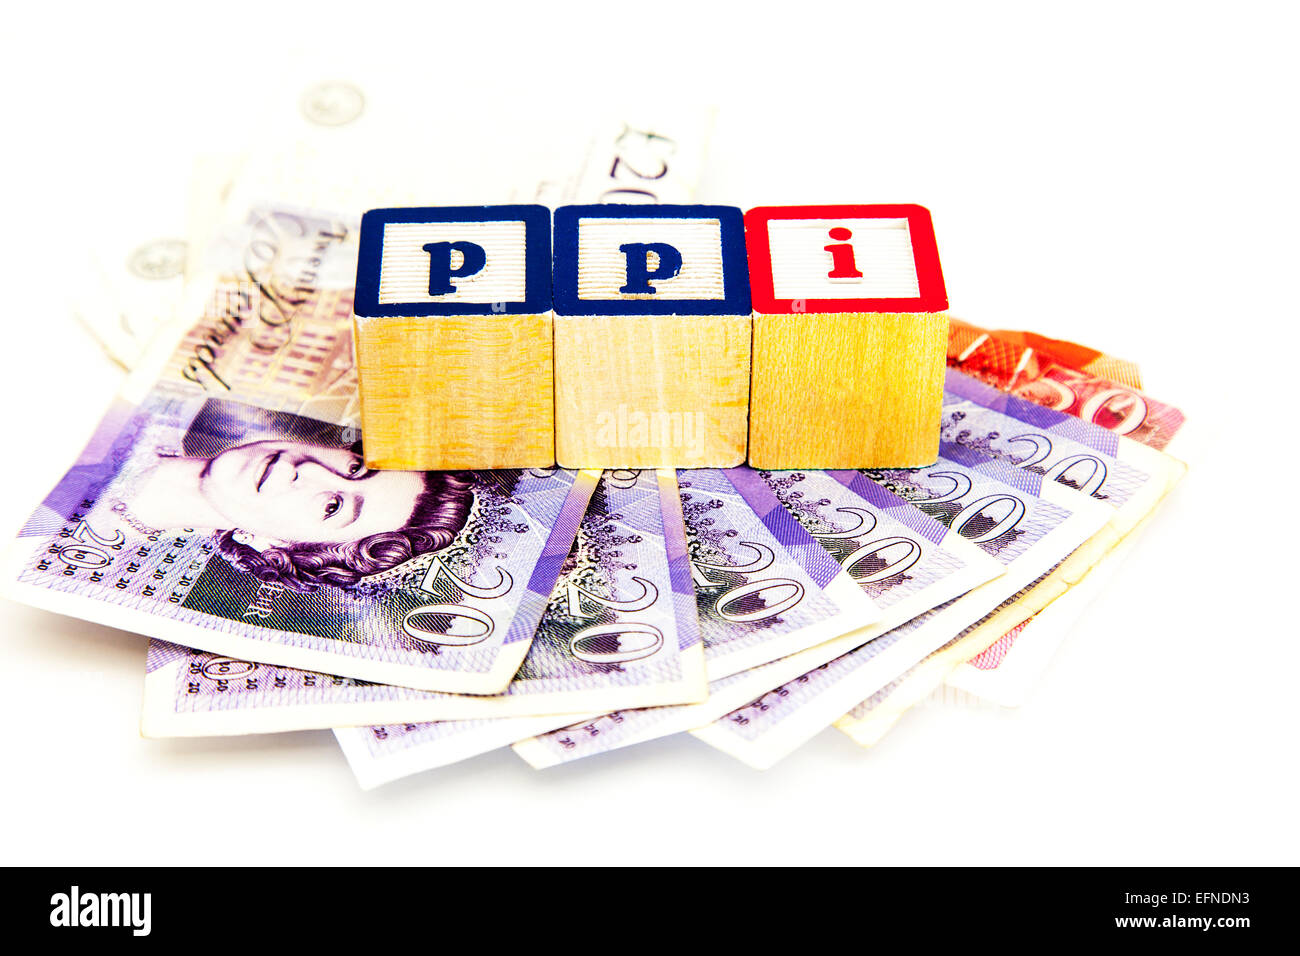 Ppi scandal payment protection scheme money payback claim payments insurance banks bank cut out copy space white - Stock Image